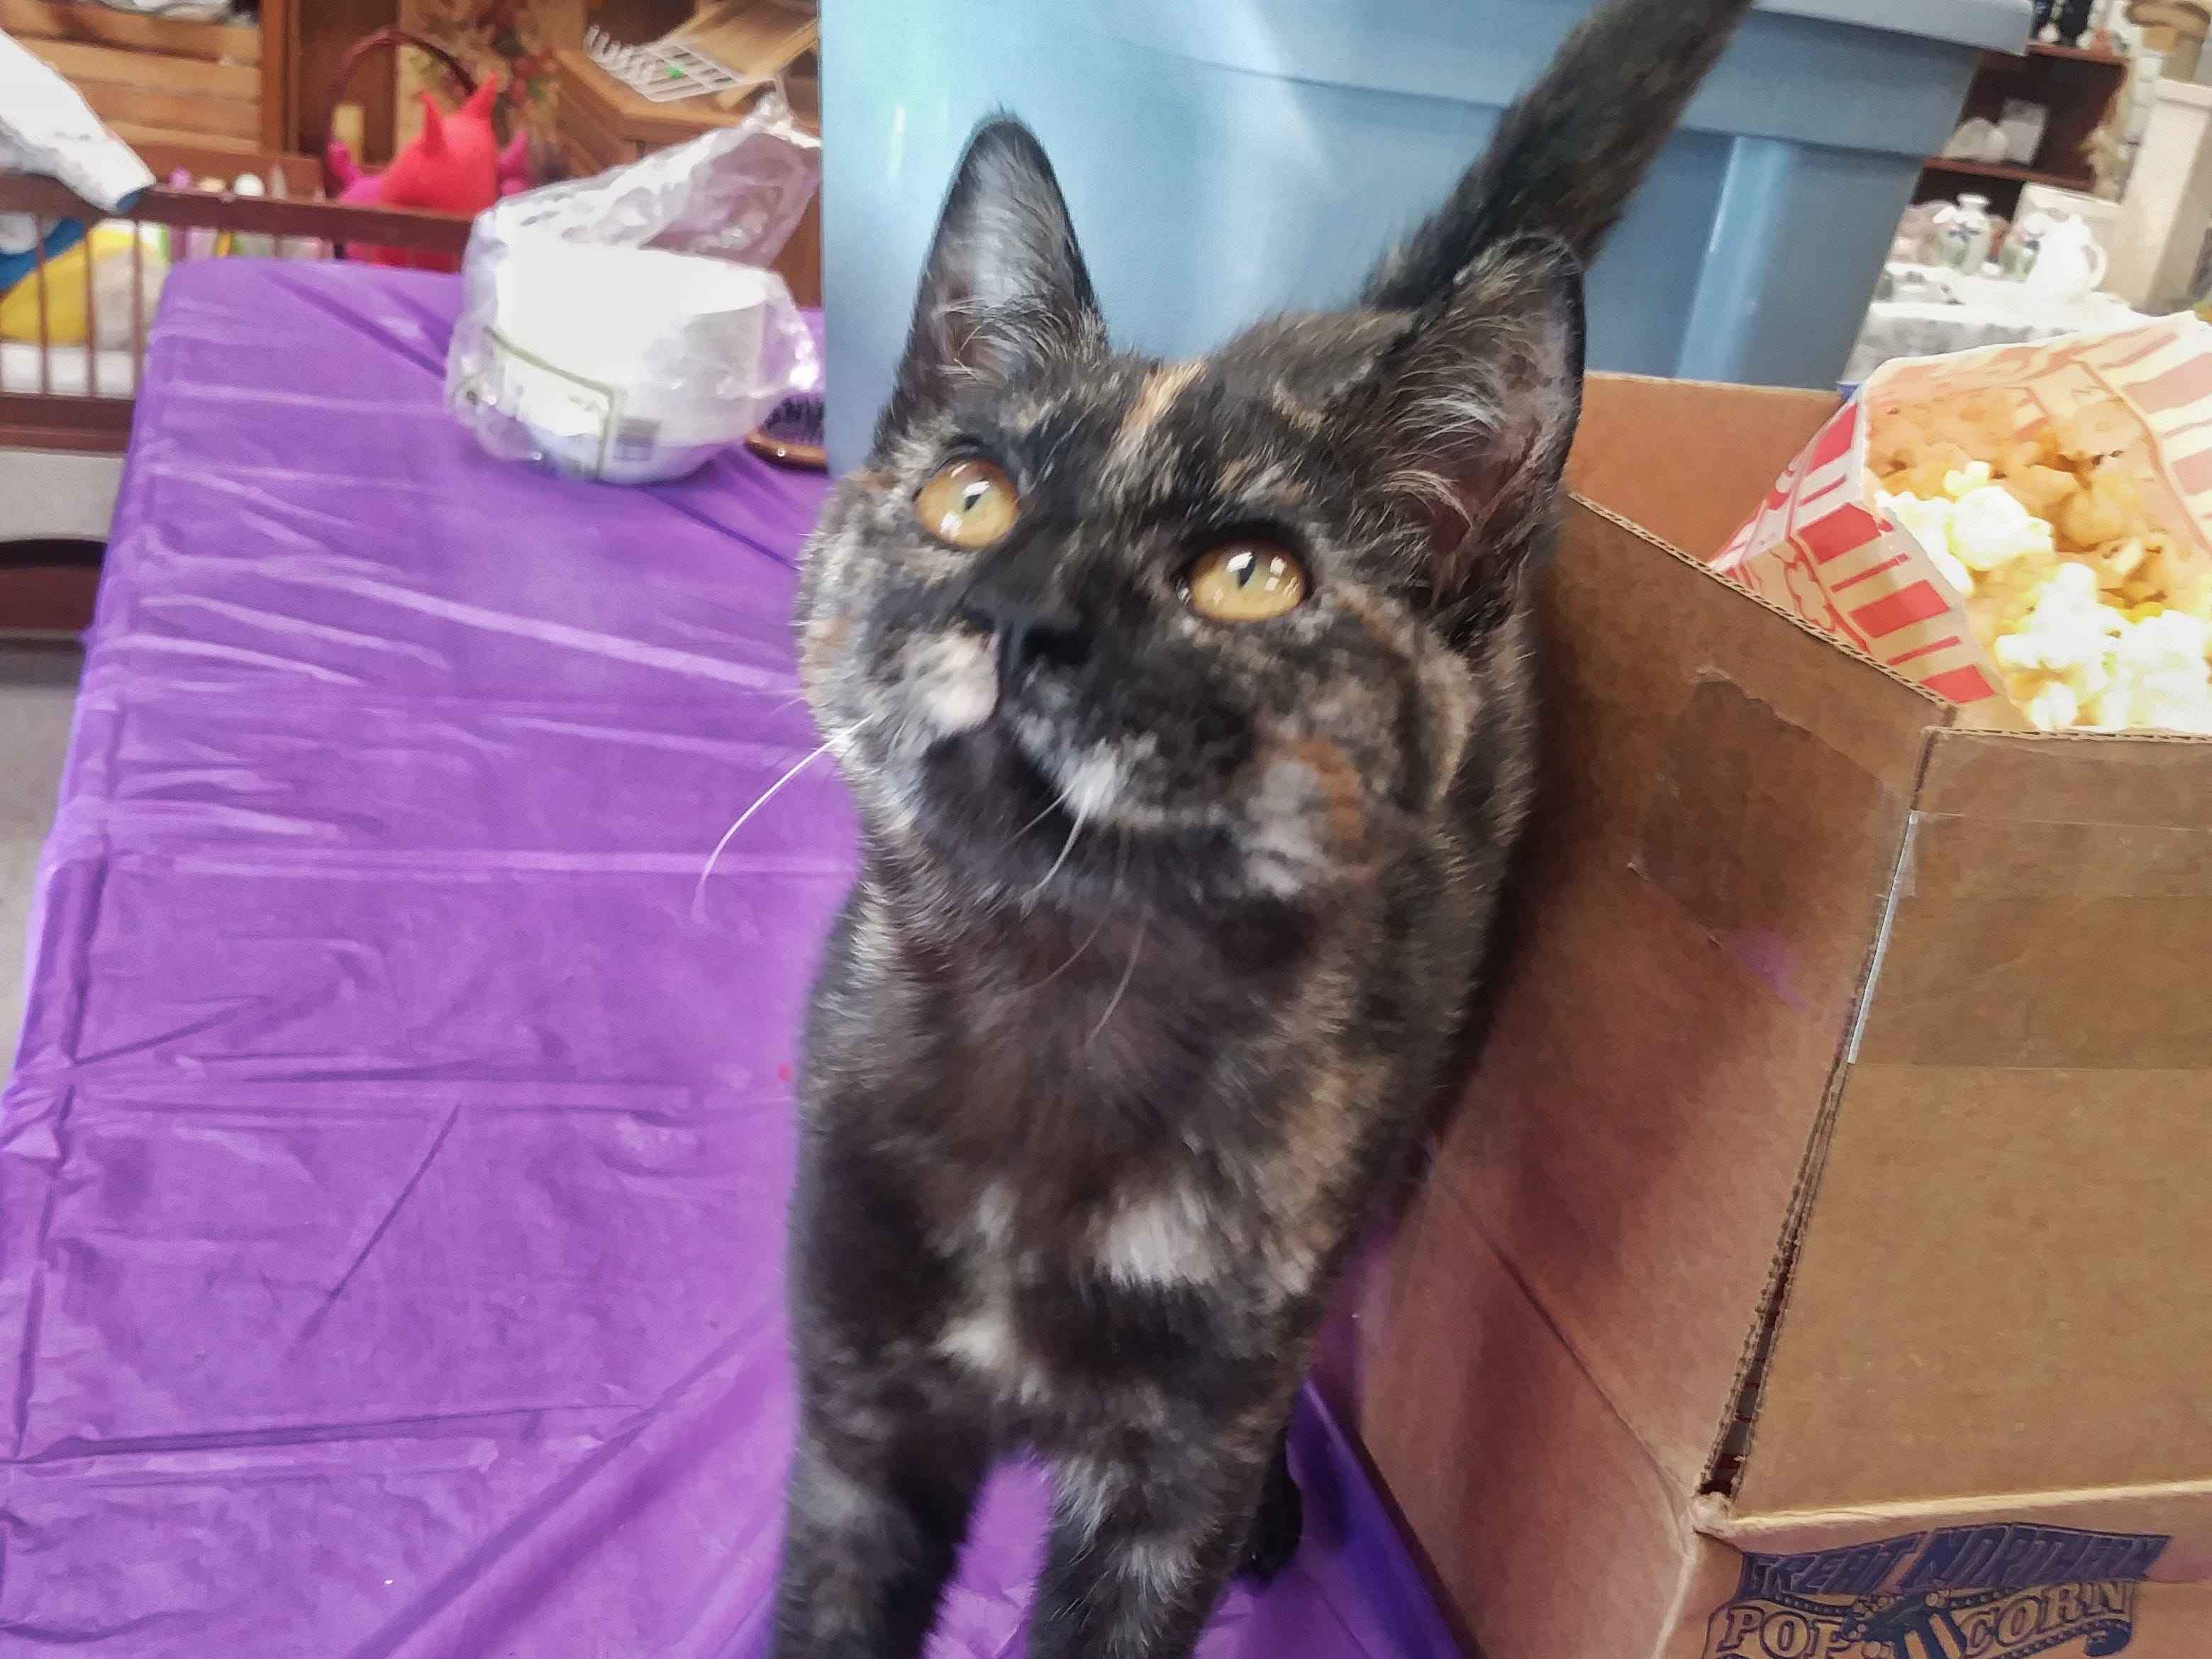 Dixie is a 5-month-old female kitten with beautiful tortoiseshell markings and big golden eyes. She's a very playful and talkative girl. Email Spay Neuter and Protect at Snap.spayneuterandprotect@gmail.com. Call 209-6966.